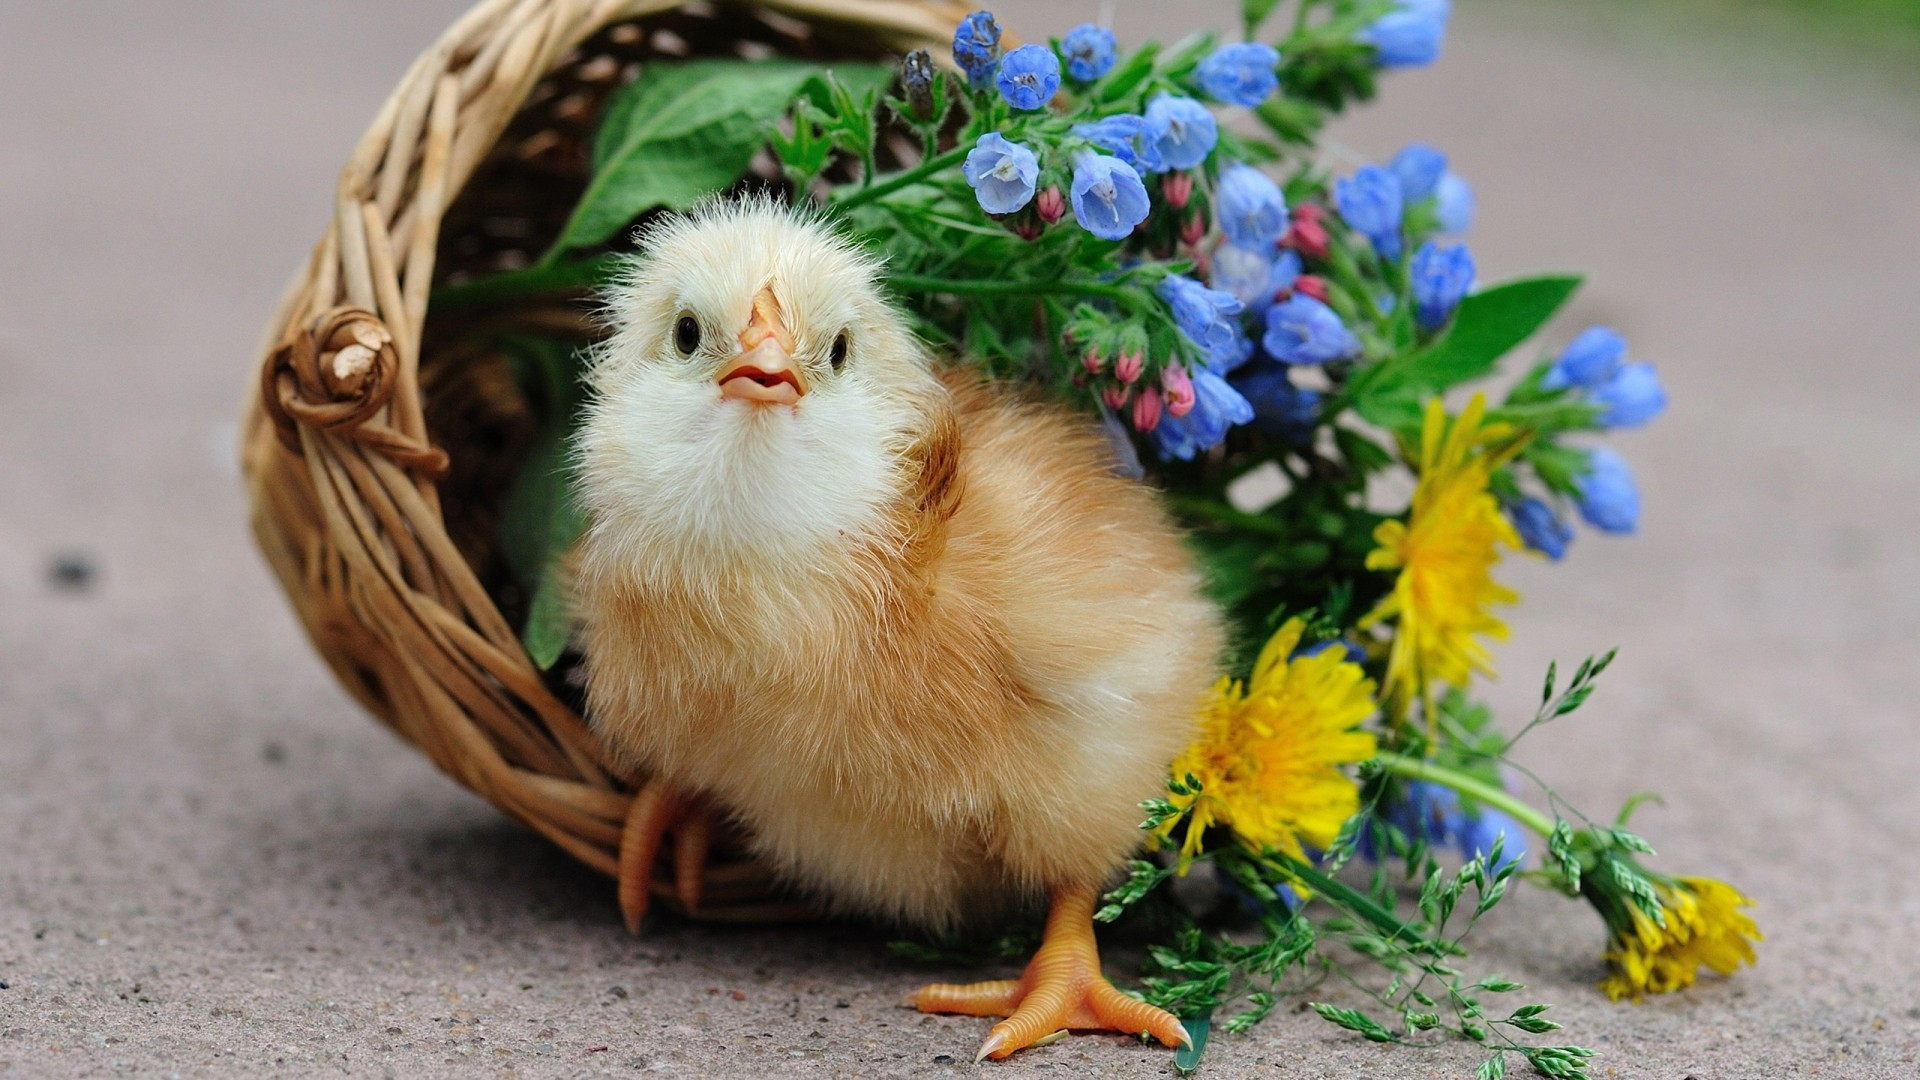 chicken full hd wallpaper and background image | 1920x1080 | id:466403